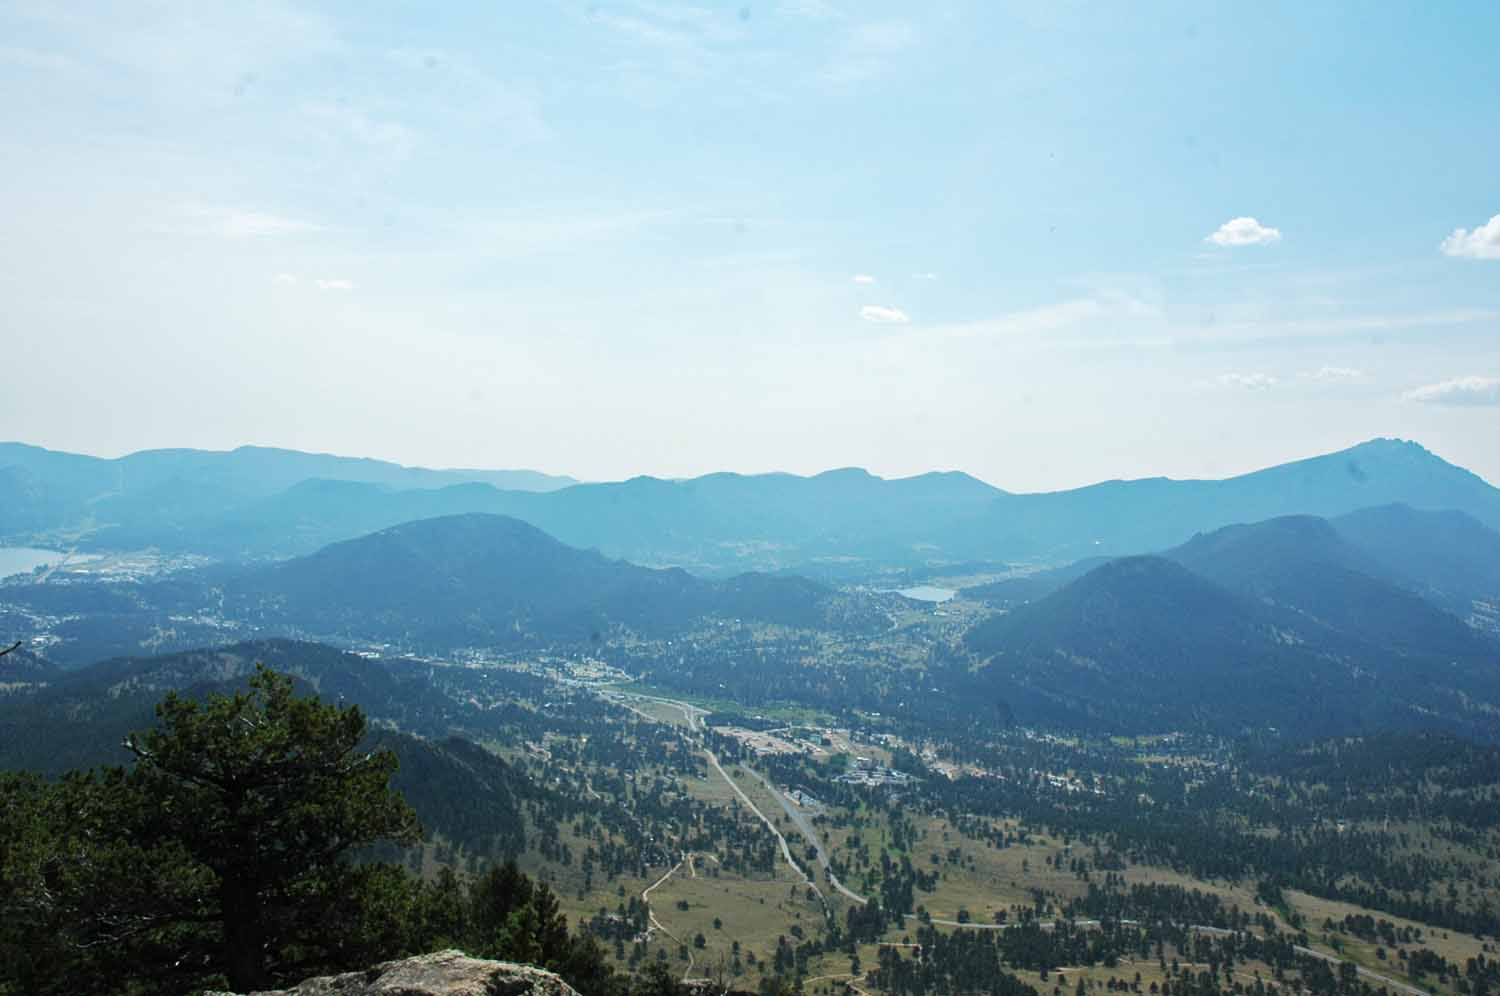 Estes Park from top of Deer Mountain